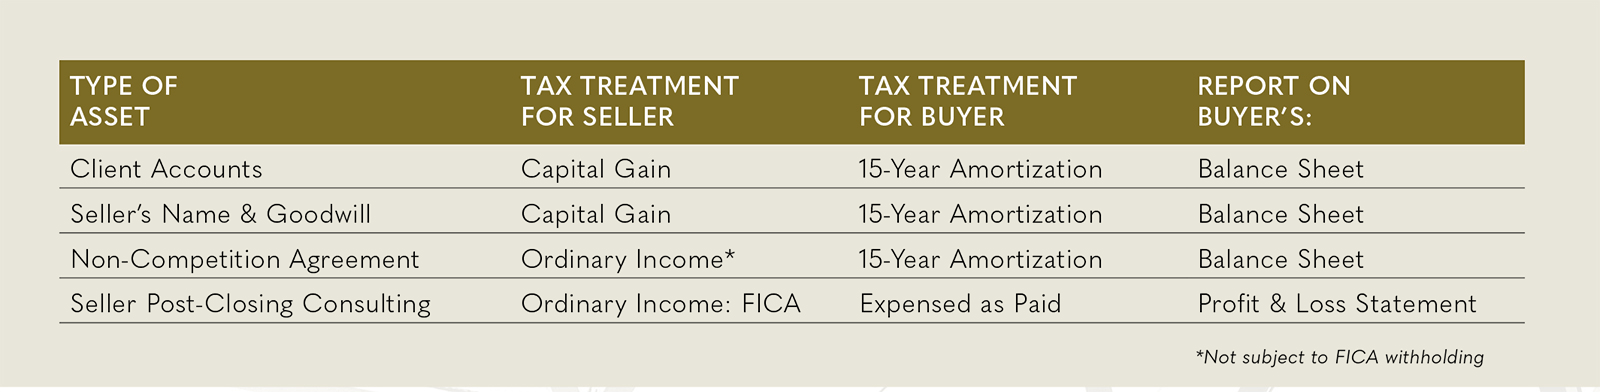 Tax Treatment Table